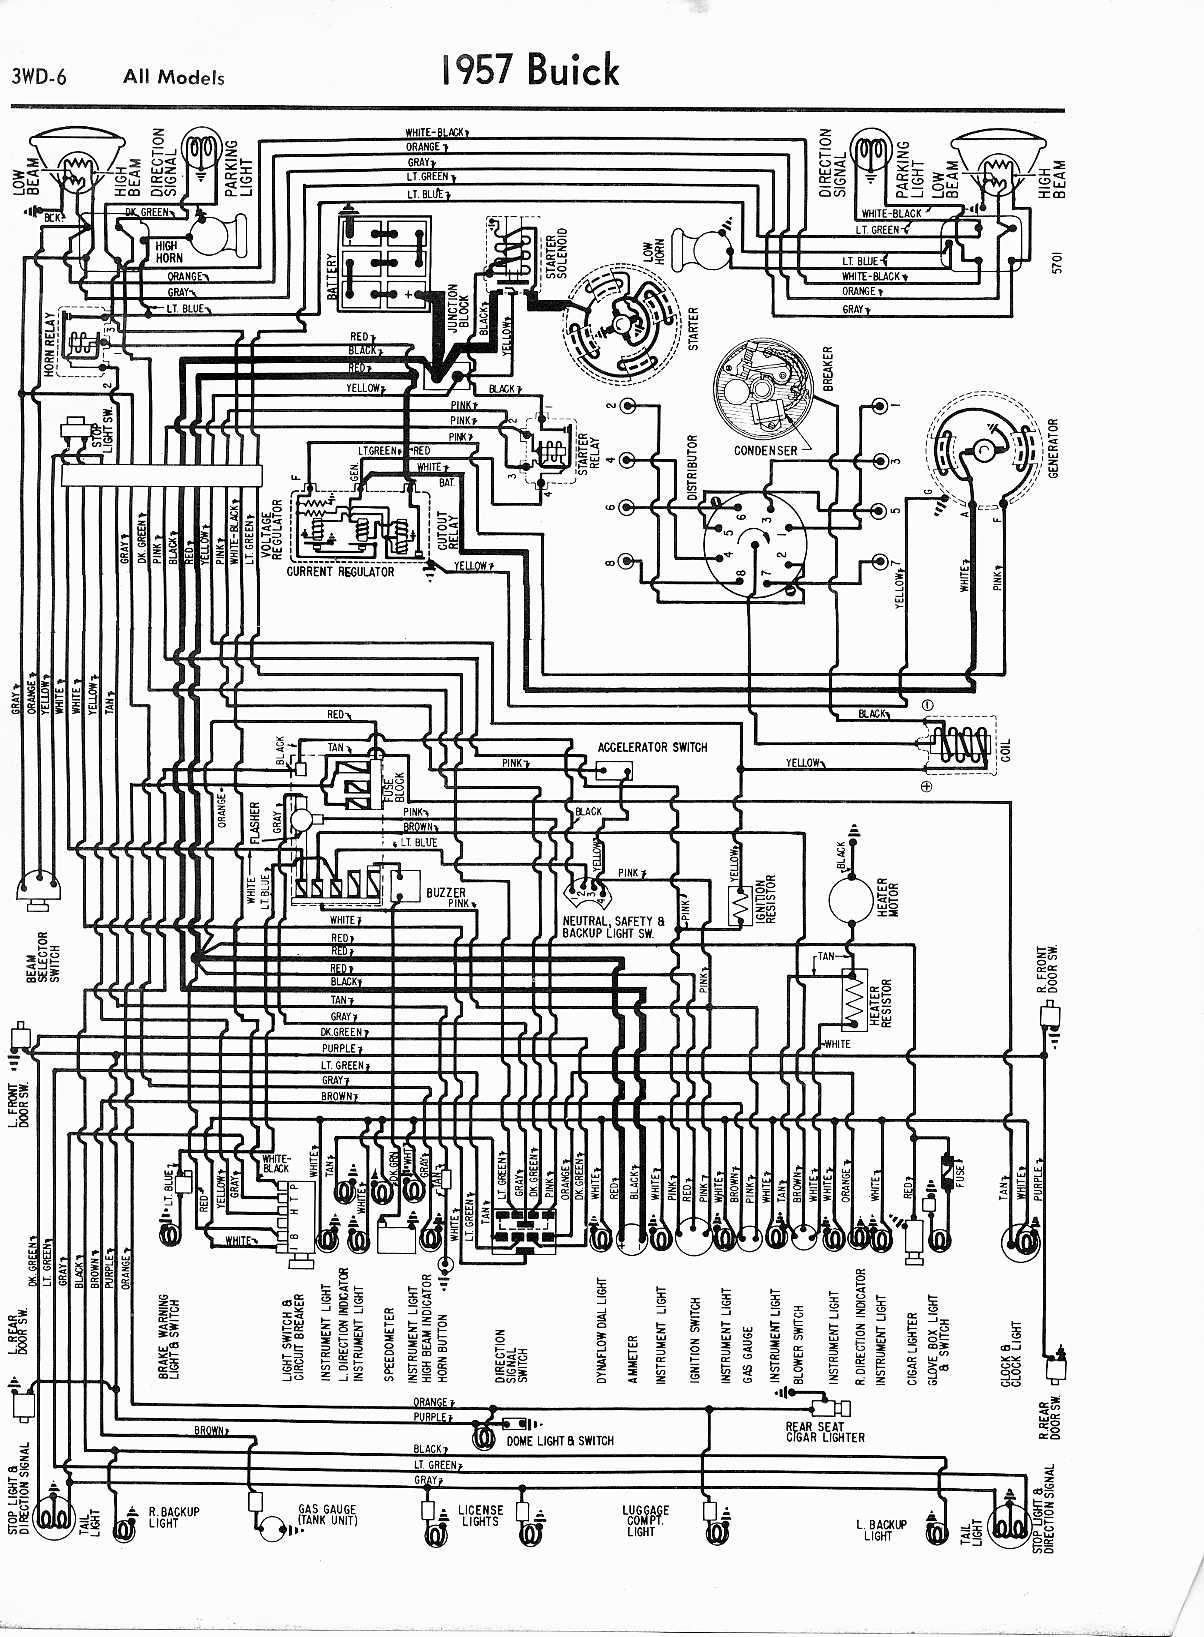 hight resolution of 1969 skylark wiring diagrams wiring diagram view 1969 buick skylark engine diagram